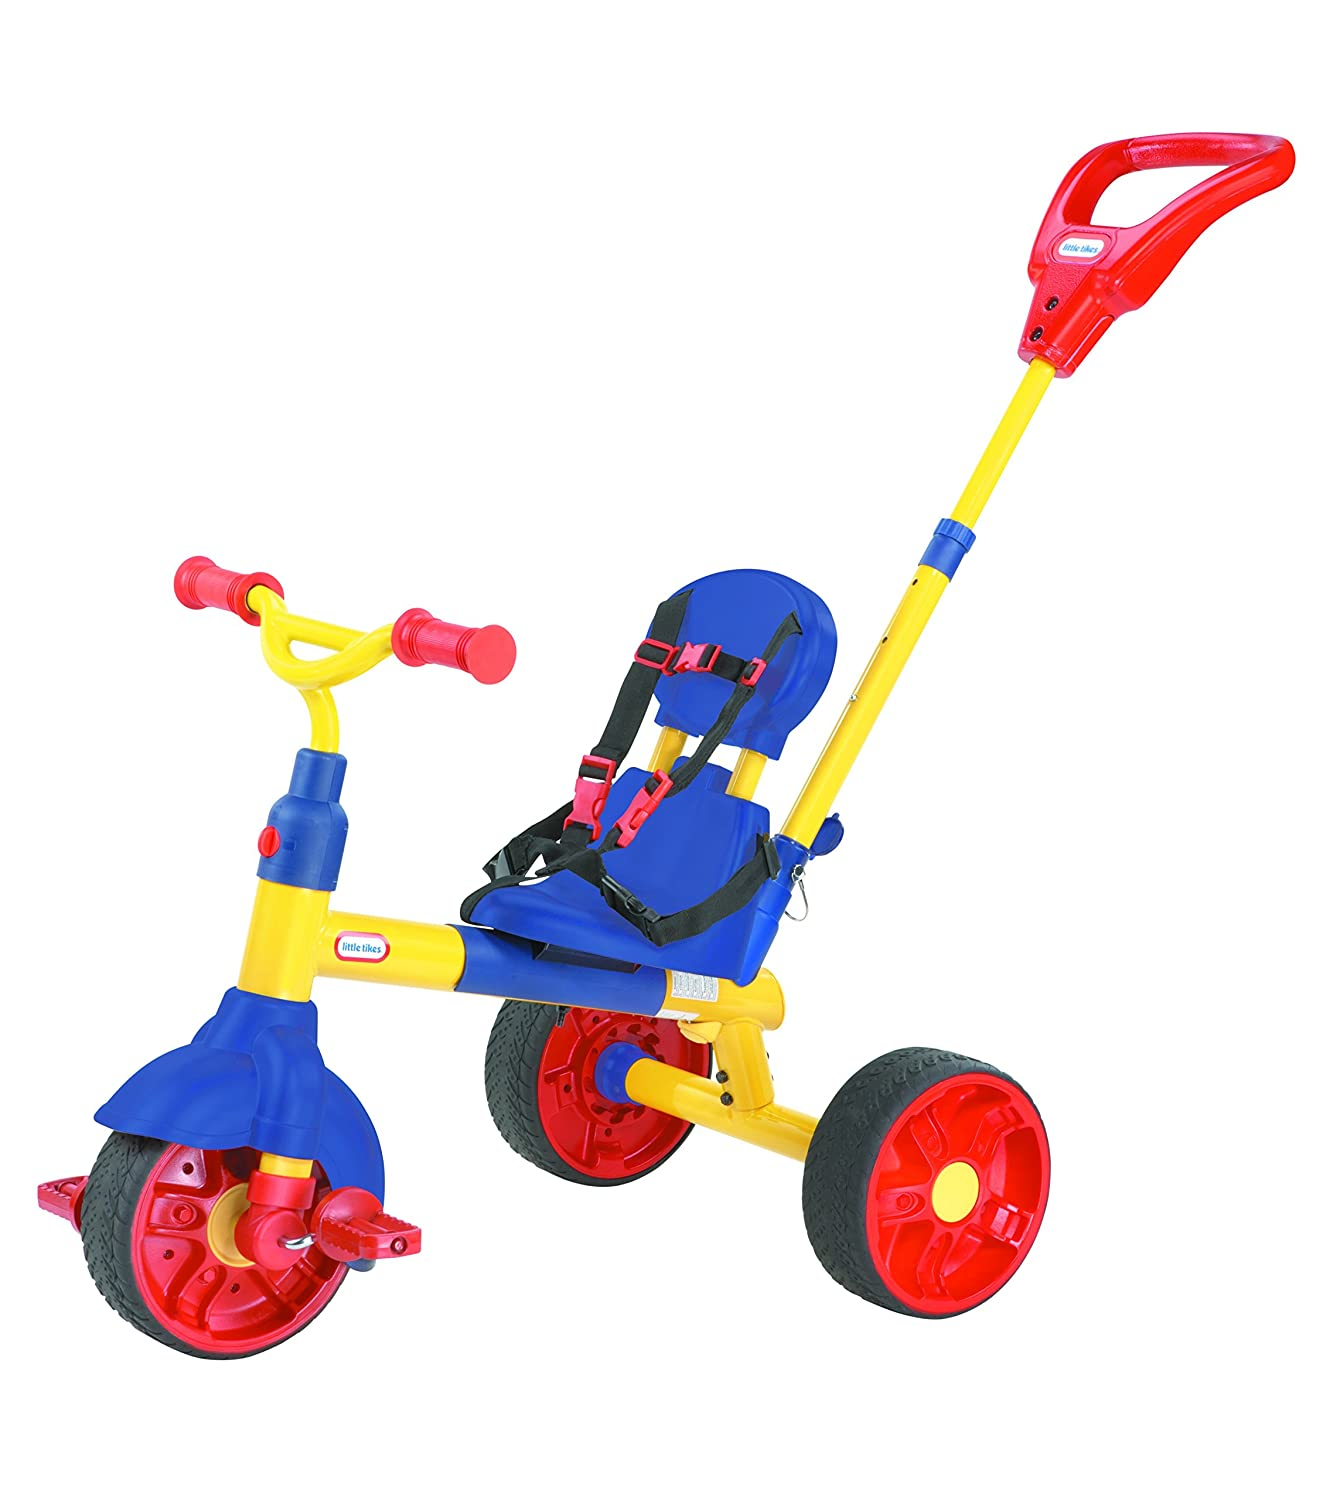 Little tikes 4 1 trike purple ride toys for toddlers in 2017 for Little tikes 2 in 1 buildin to learn motor workshop